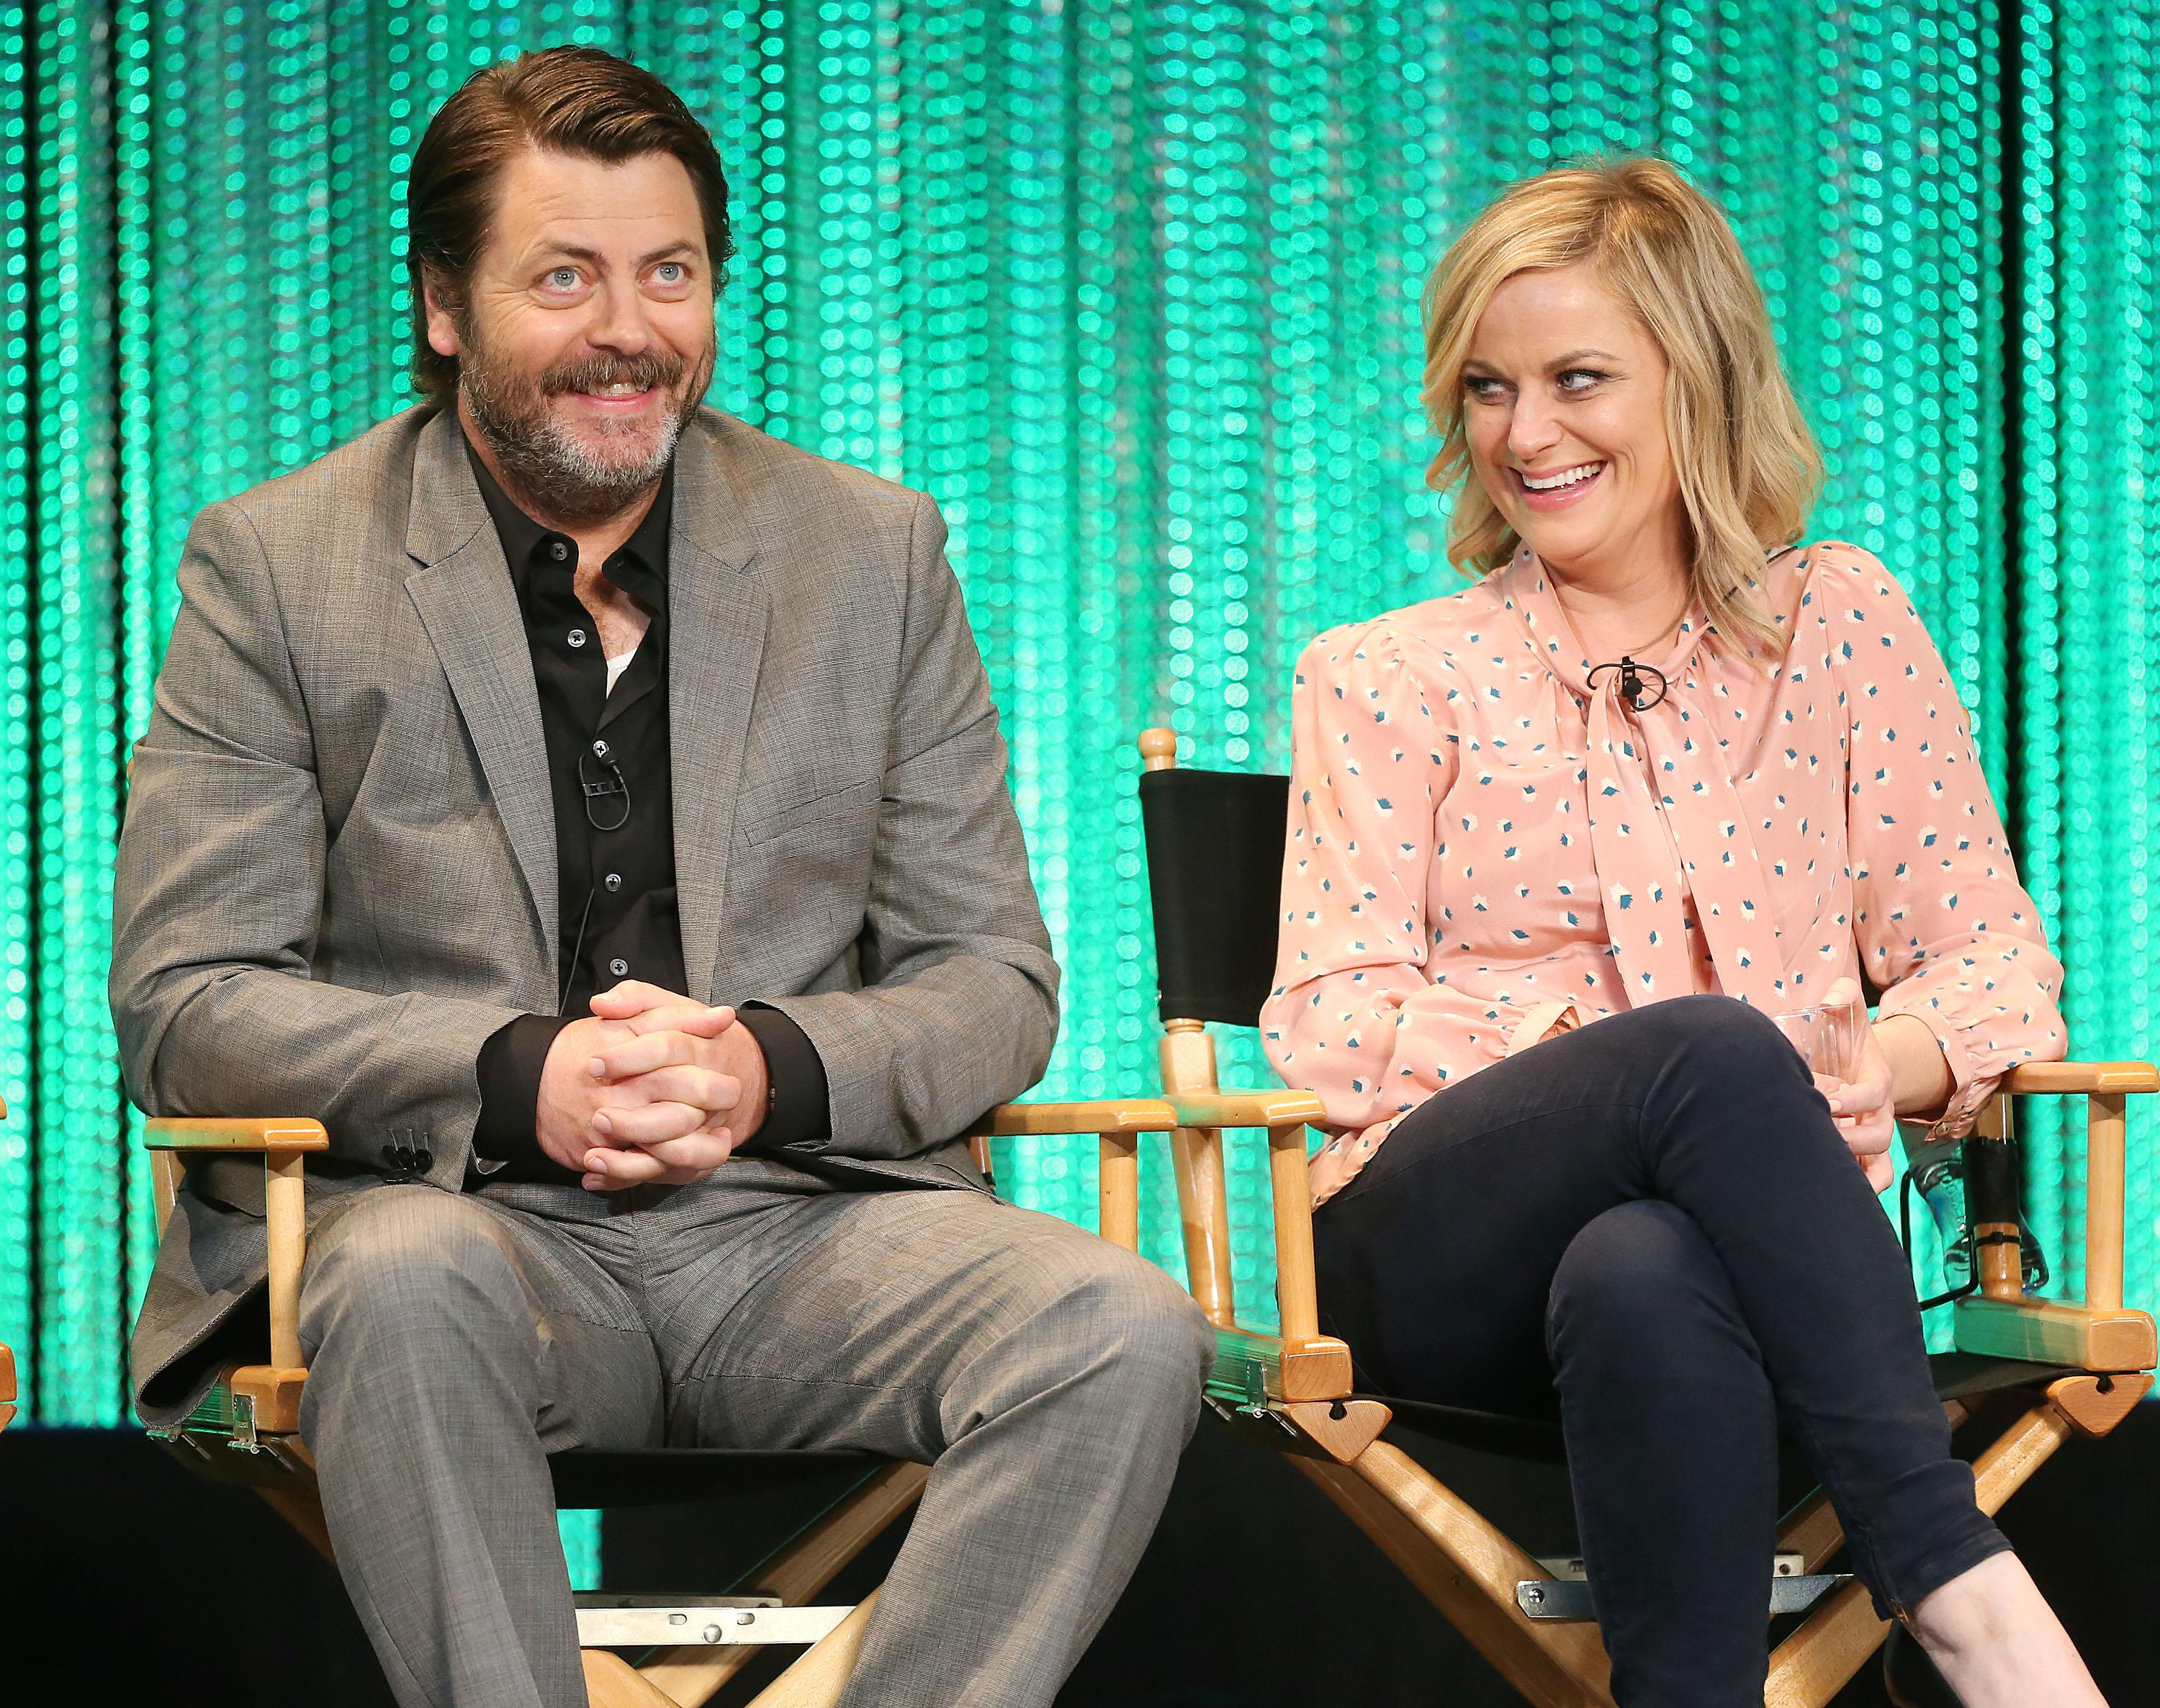 HOLLYWOOD, CA - MARCH 18: Actor Nick Offerman (L) and actress Amy Poehler speak during The Paley Center for Media's PaleyFest 2014 Honoring 'Parks and Recreation' at the Dolby Theatre on March 18, 2014 in Hollywood, California.  (Photo by Frederick M. Brown/Getty Images)